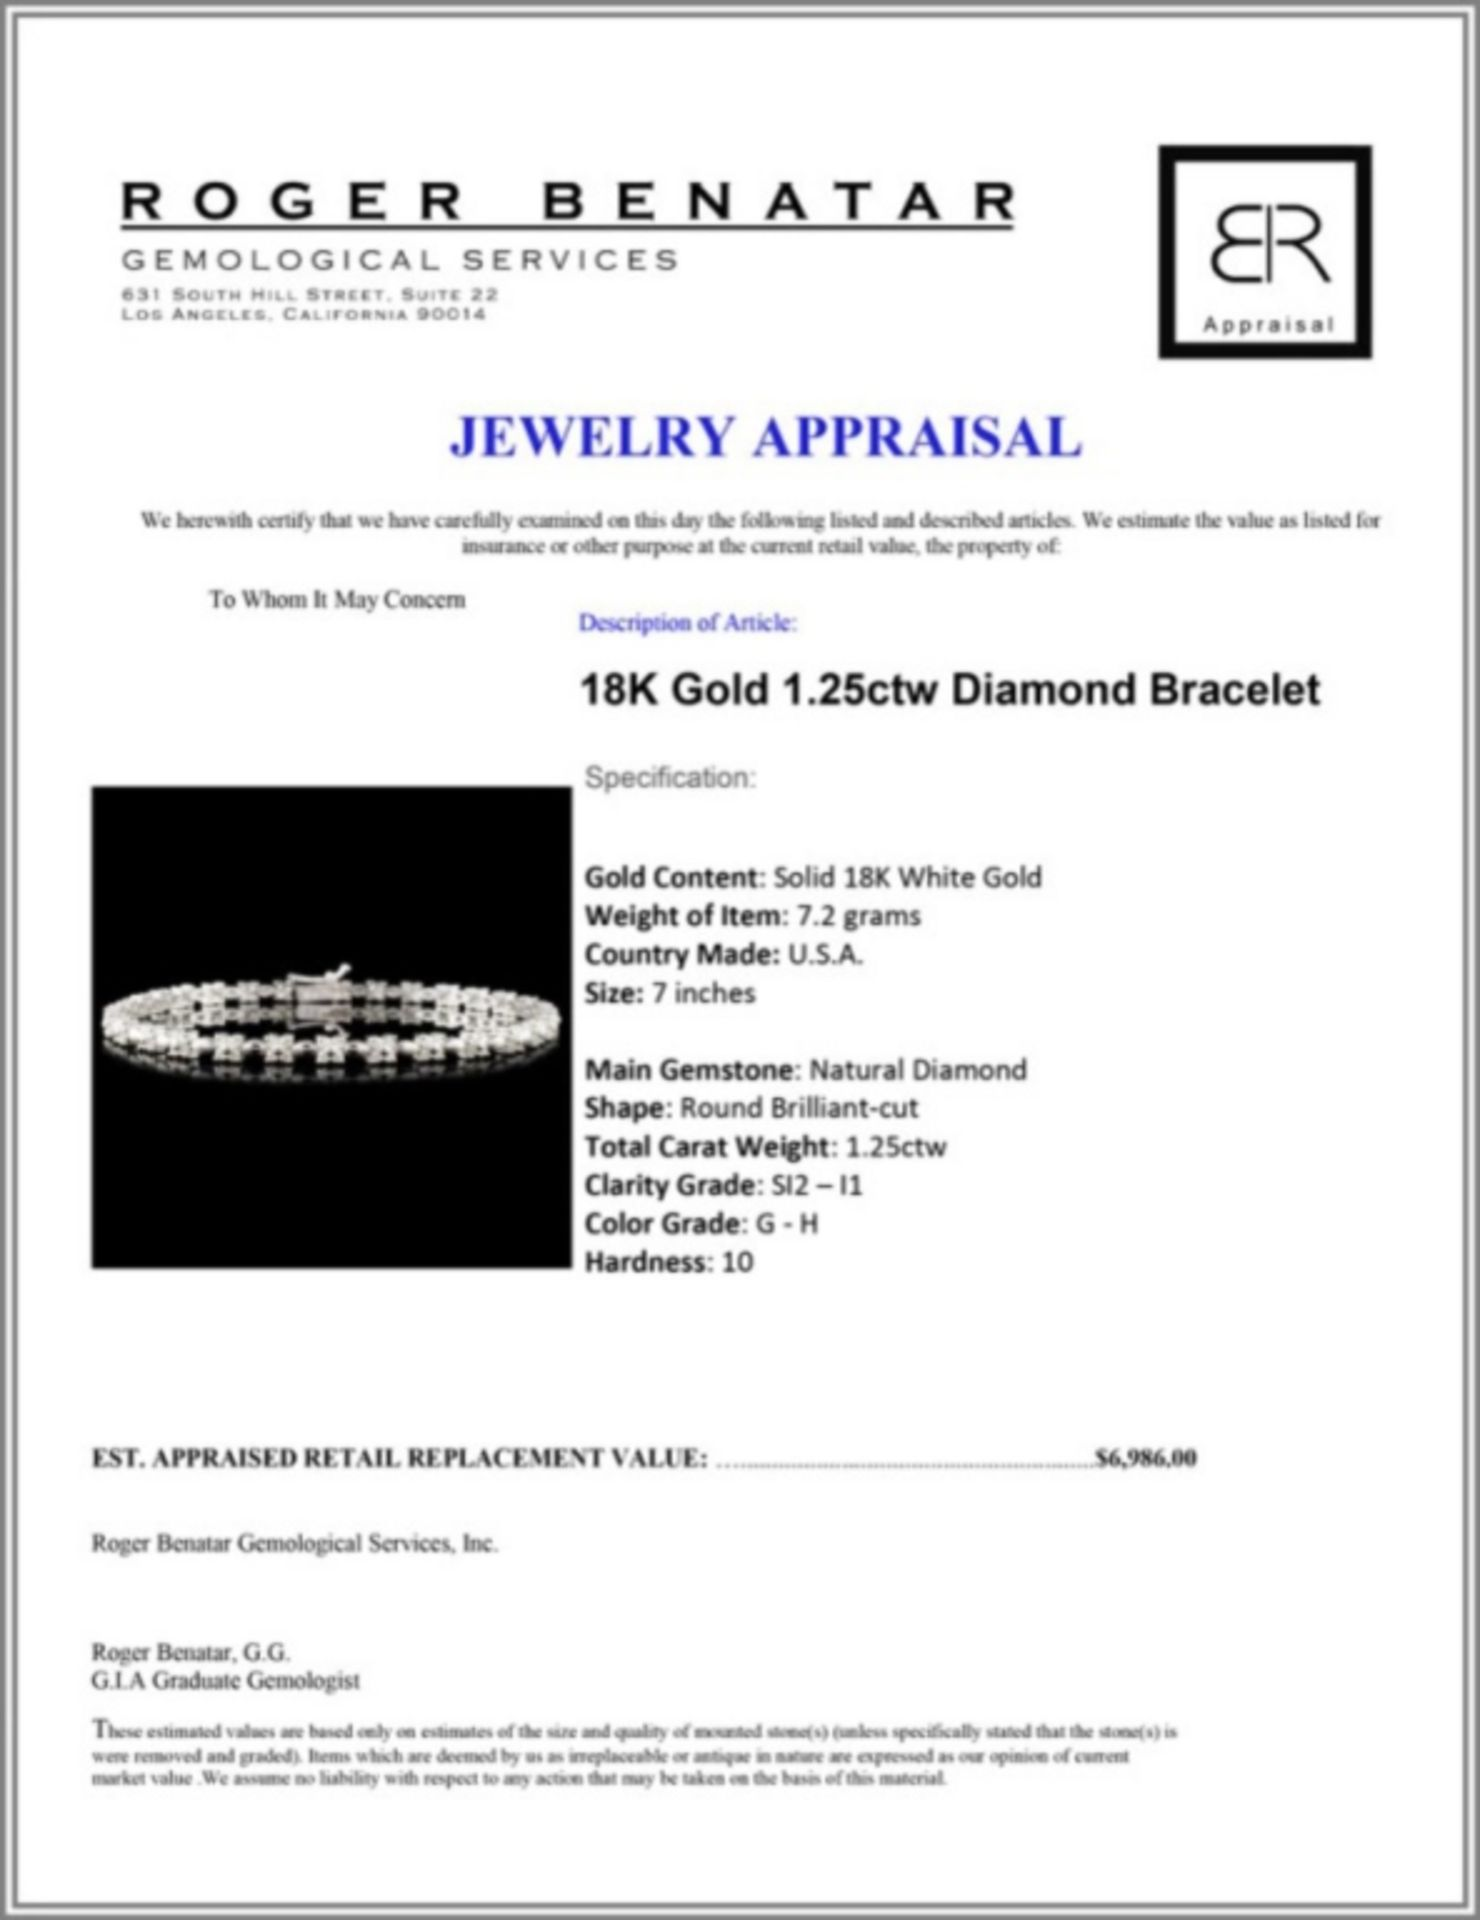 18K Gold 1.25ctw Diamond Bracelet - Image 3 of 3